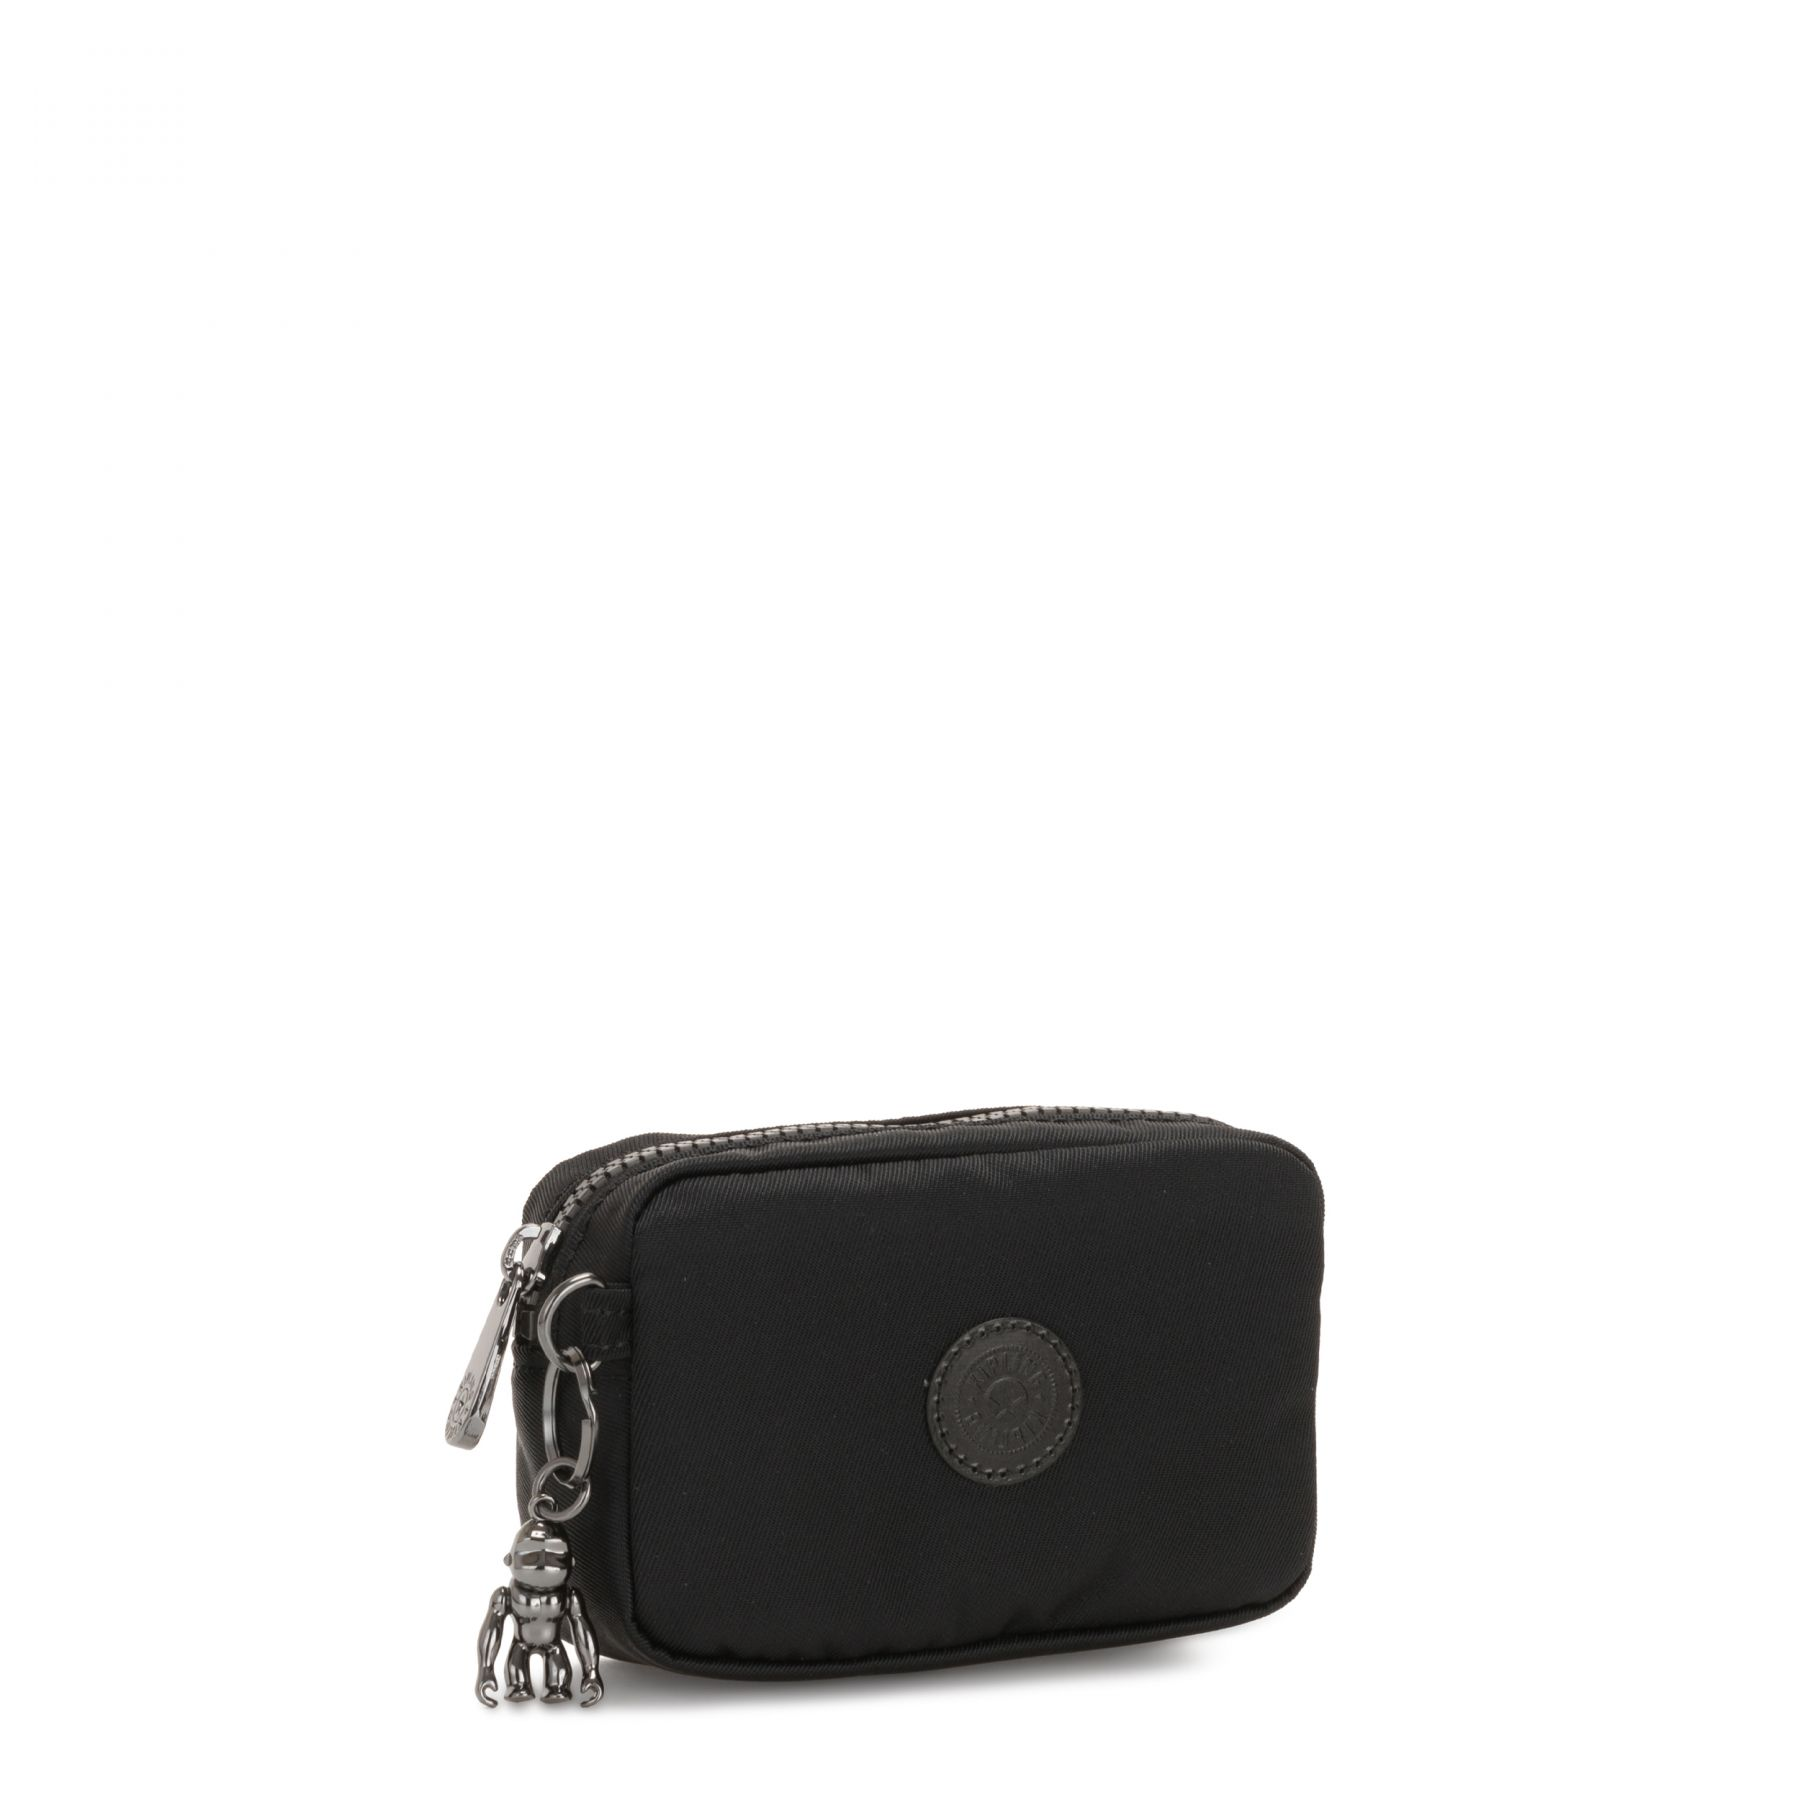 GLEAM S Latest Accessories by Kipling - view 4